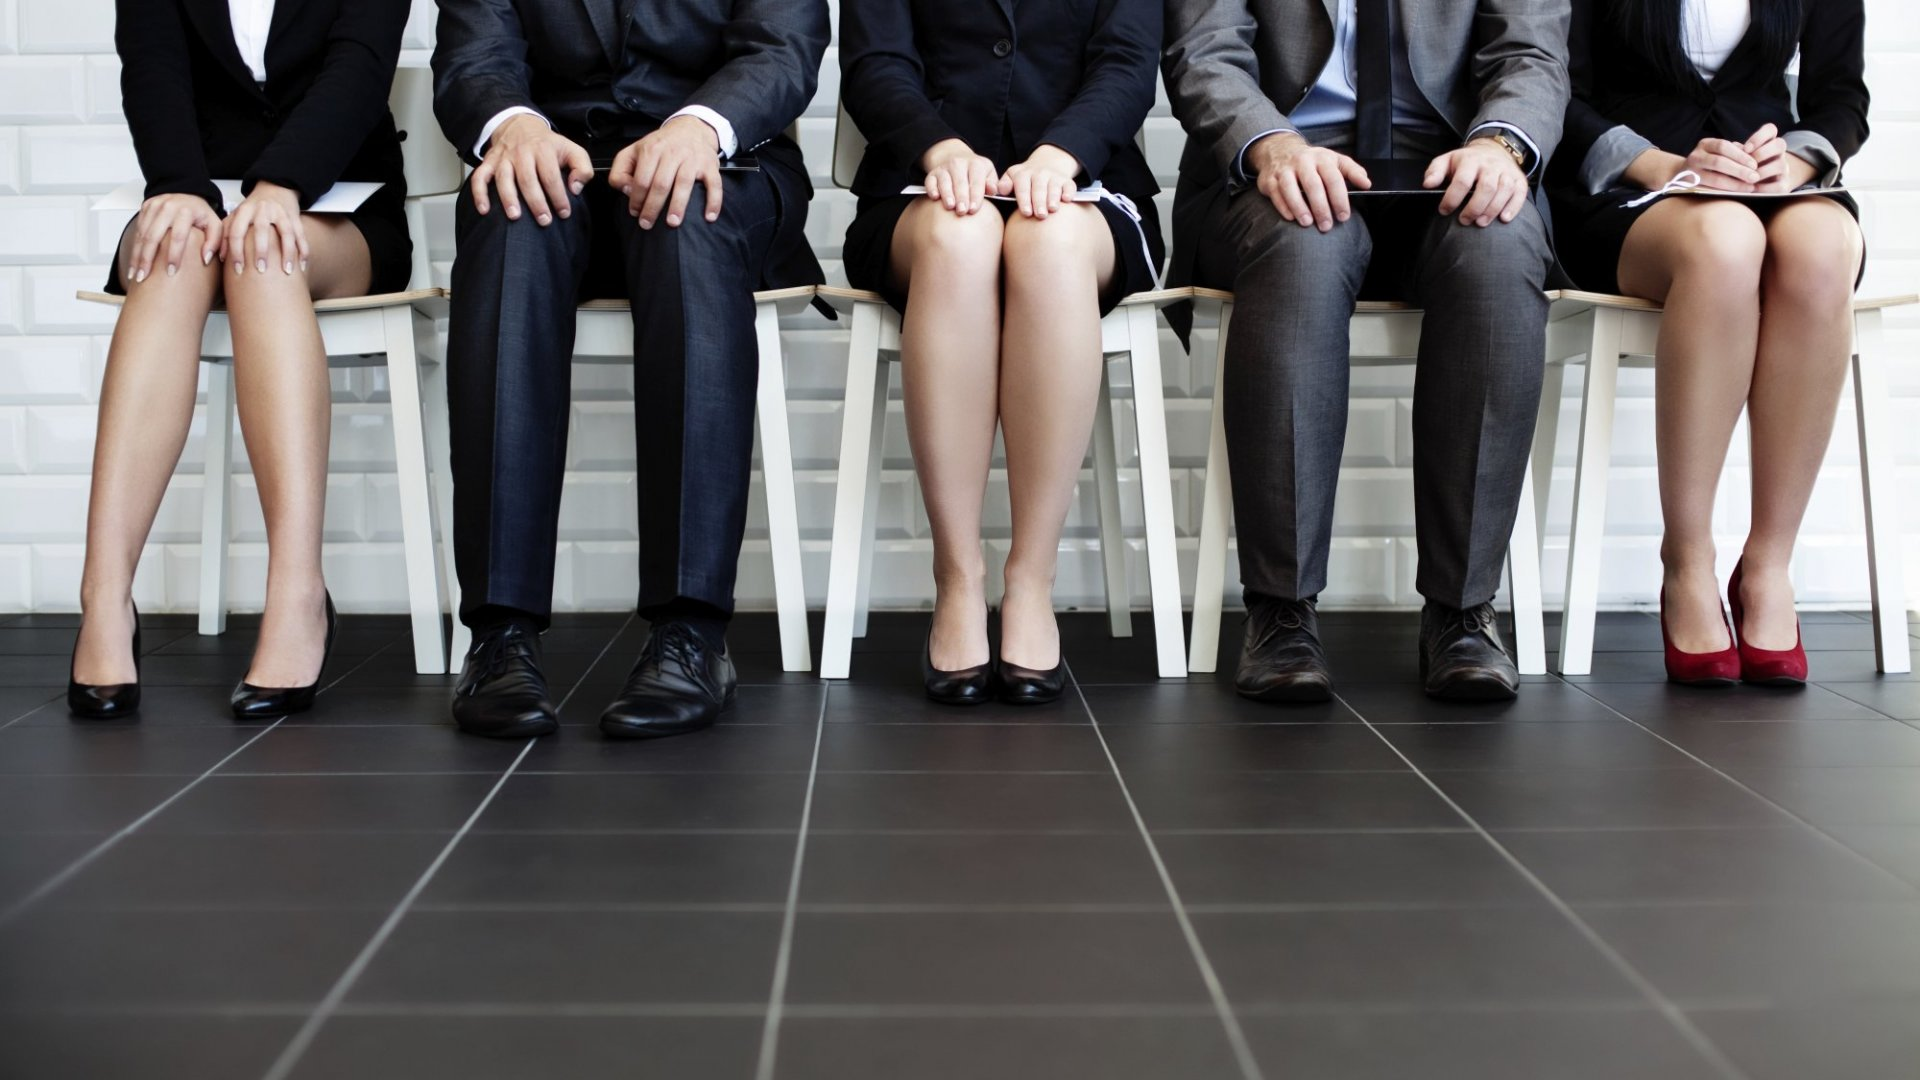 8 Stealth Interview Questions That Reveal True Character